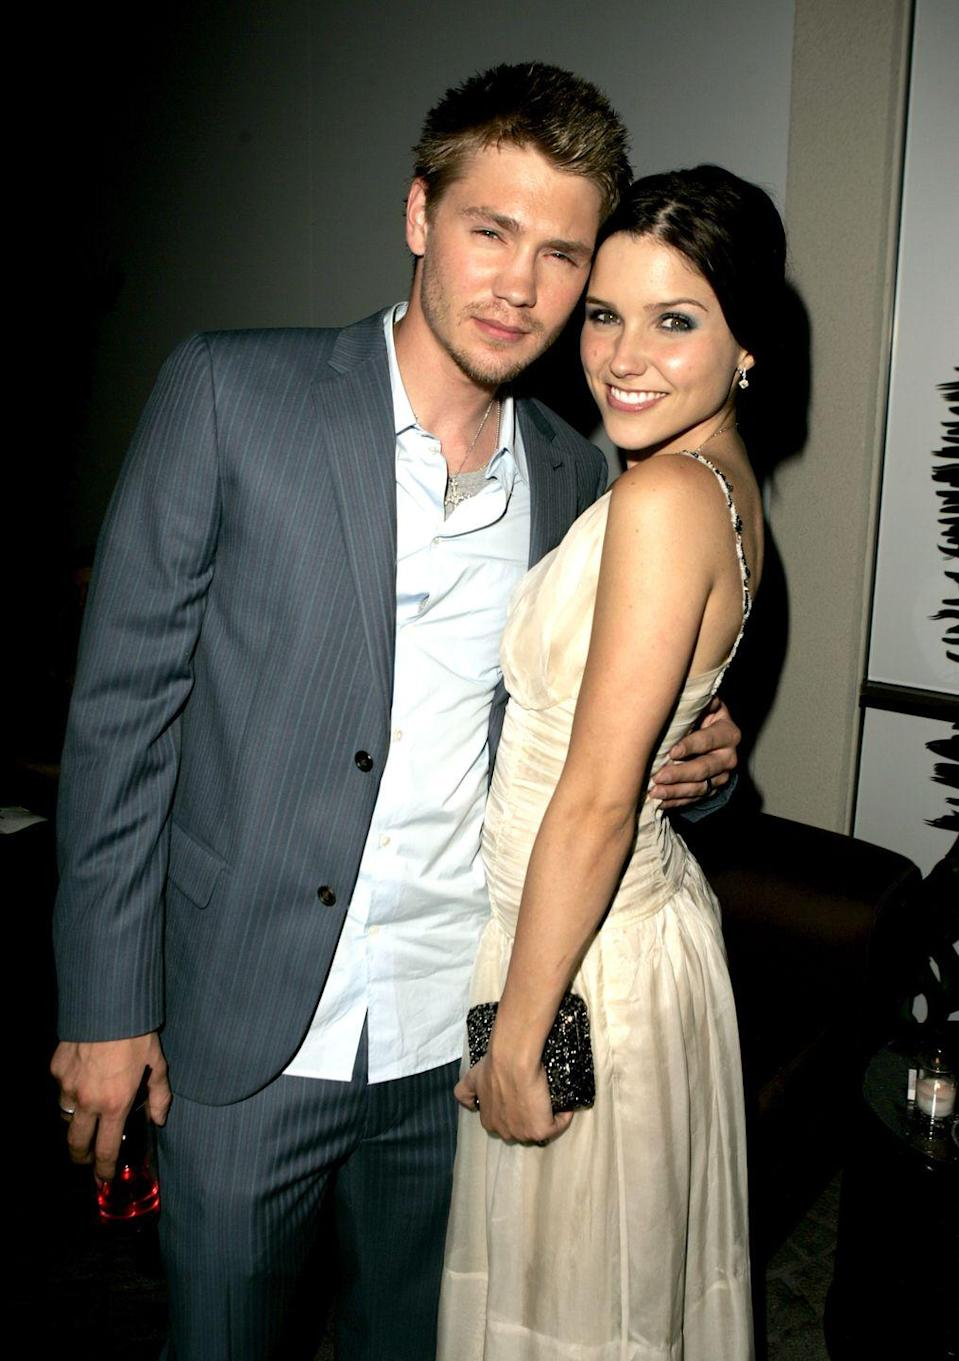 """<p>Much like their <em>One Tree Hill </em>characters Brooke Davis and Lucas Scott, Sophia Bush and Chad Michael Murray were not destined for each other. The former co-stars wed in <a href=""""http://www.usmagazine.com/celebrity-news/news/sophia-bush-says-she-and-ex-husband-chad-michael-murray-had-no-business-being-together-201471"""" rel=""""nofollow noopener"""" target=""""_blank"""" data-ylk=""""slk:2005"""" class=""""link rapid-noclick-resp"""">2005</a> only to separate a short five months later. After the split, the former couple continued to work together on the show until the series finale in 2012. </p>"""